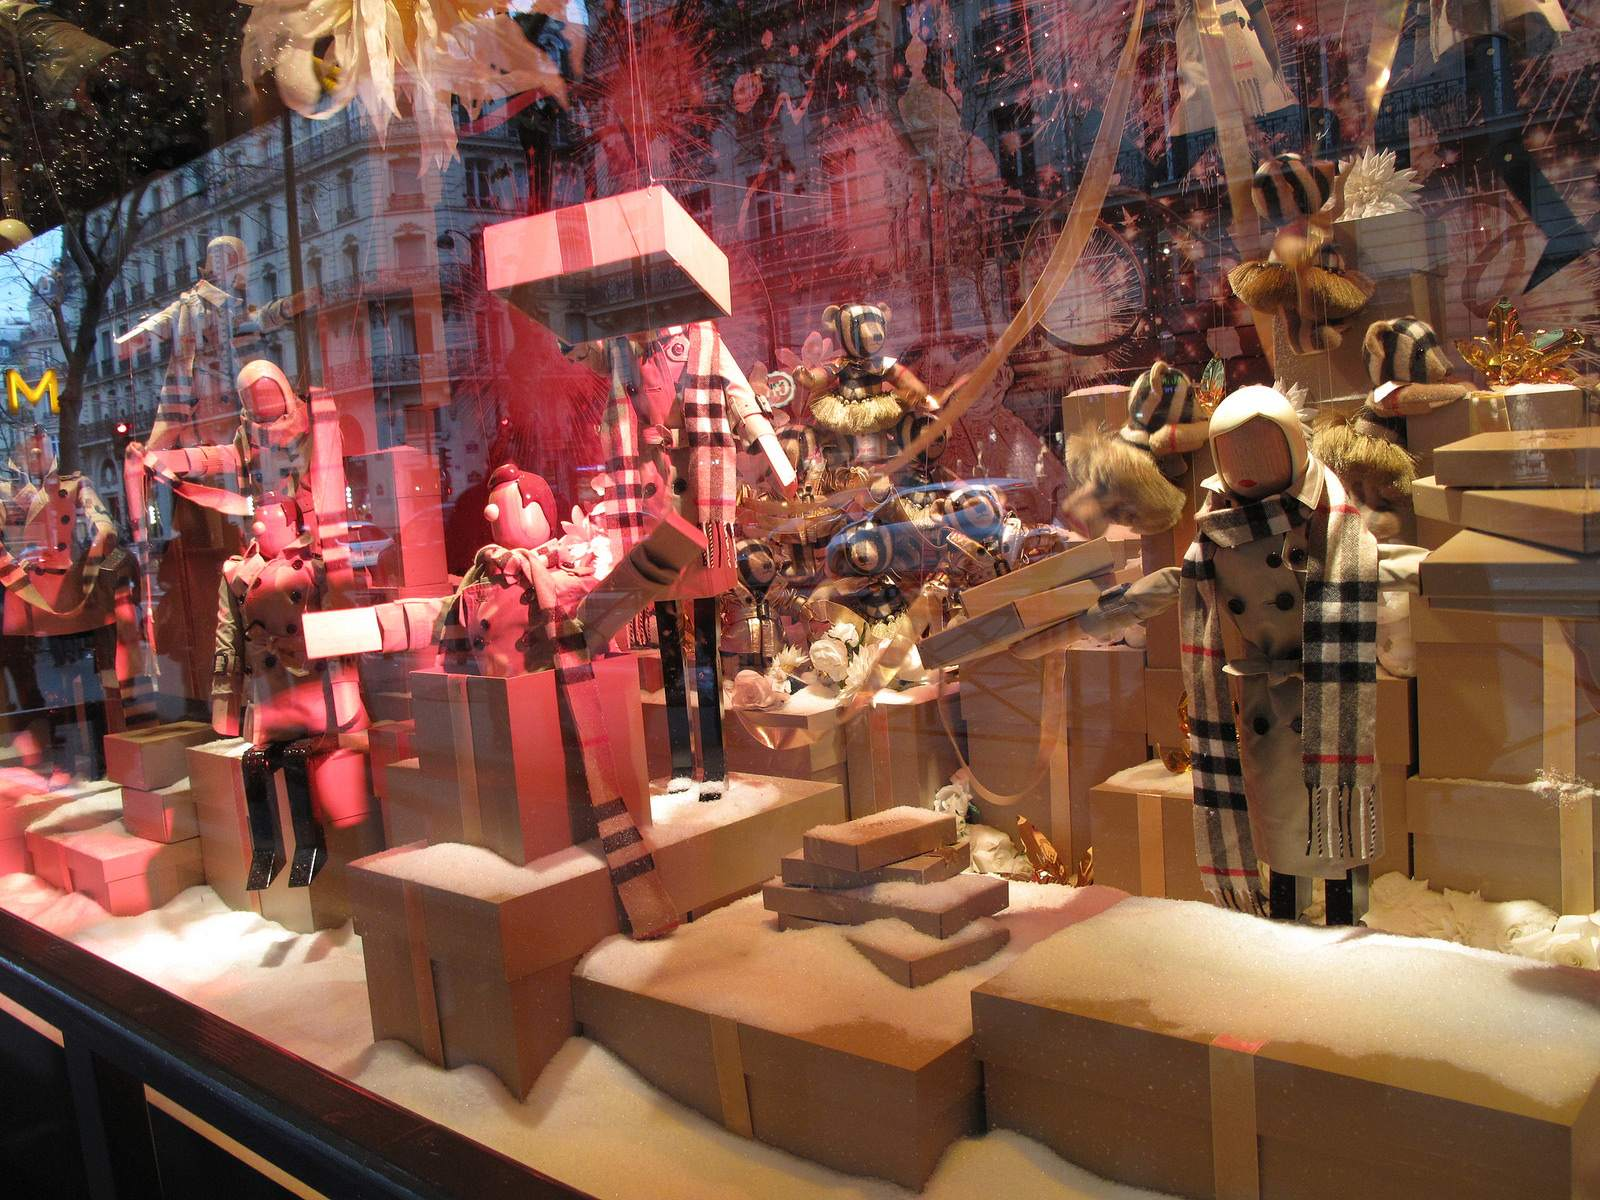 vitrines noel6 Christmas window displays in Paris